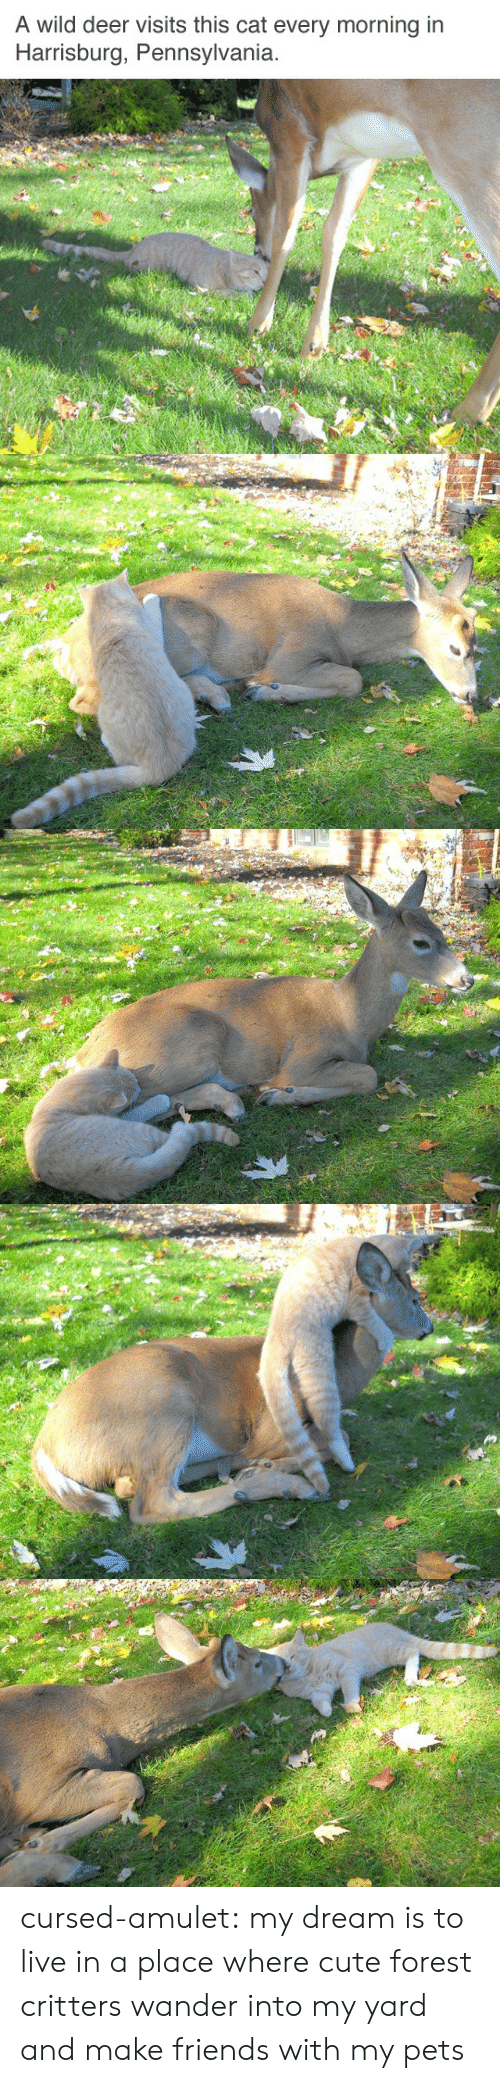 Make Friends: A wild deer visits this cat every morning in  Harrisburg, Pennsylvania cursed-amulet: my dream is to live in a place where cute forest critters wander into my yard and make friends with my pets